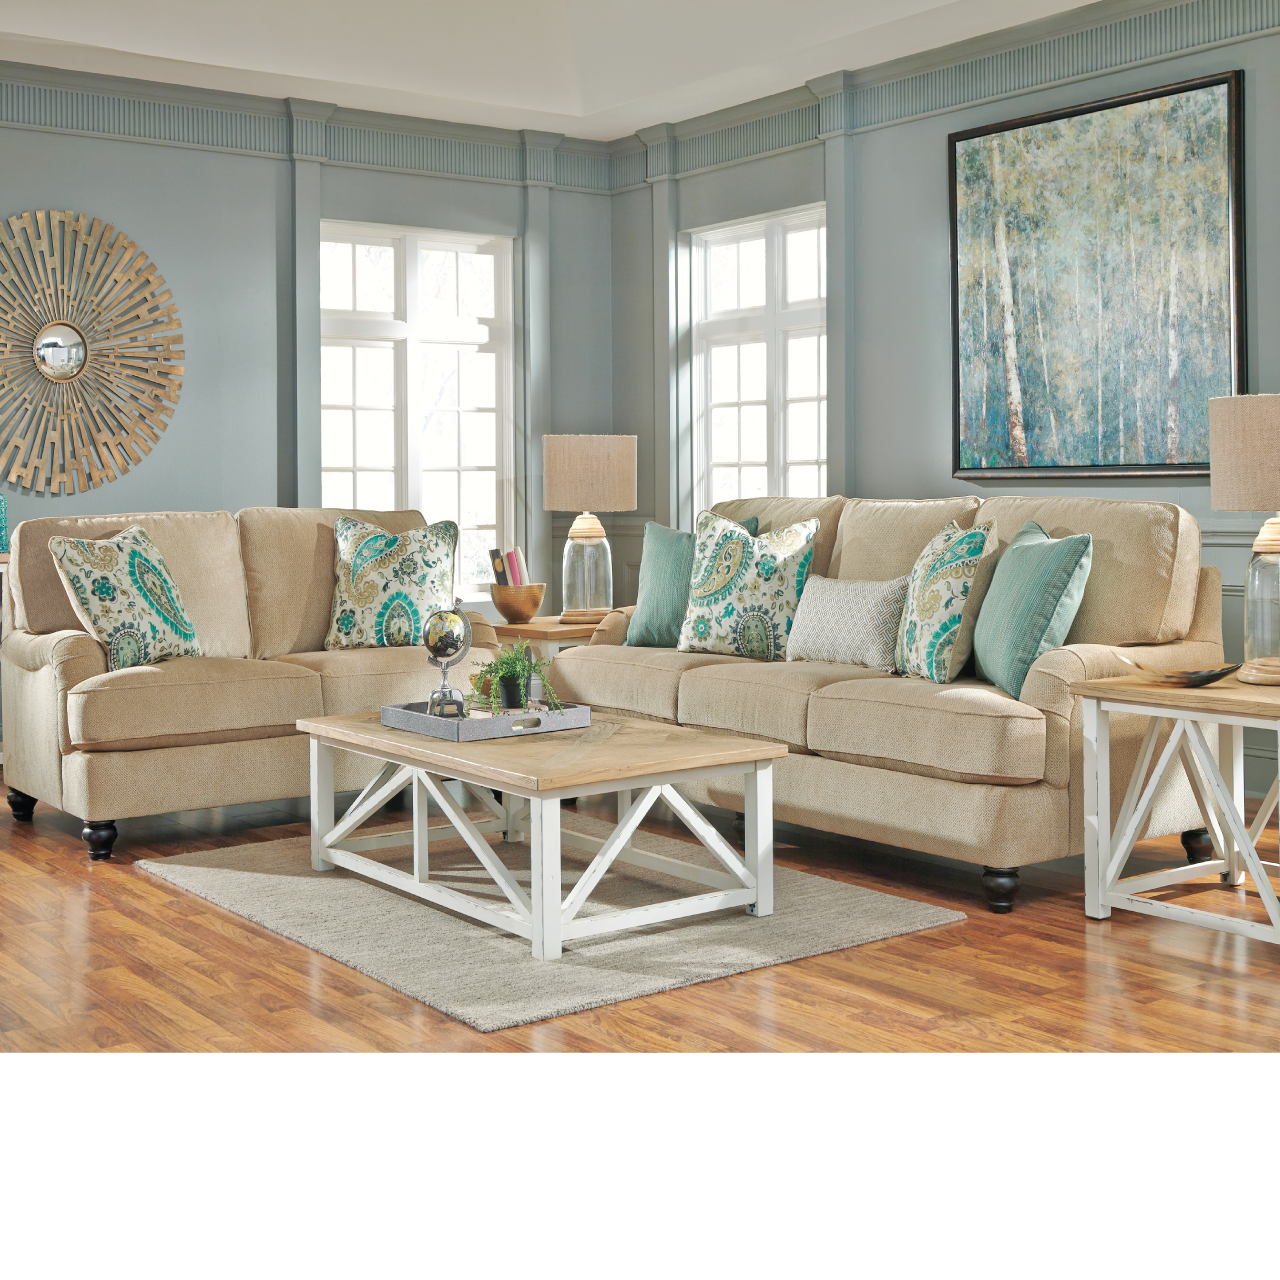 Coastal living room ideas lochian sofa by ashley furniture at kensington furniture i love this entire living room design